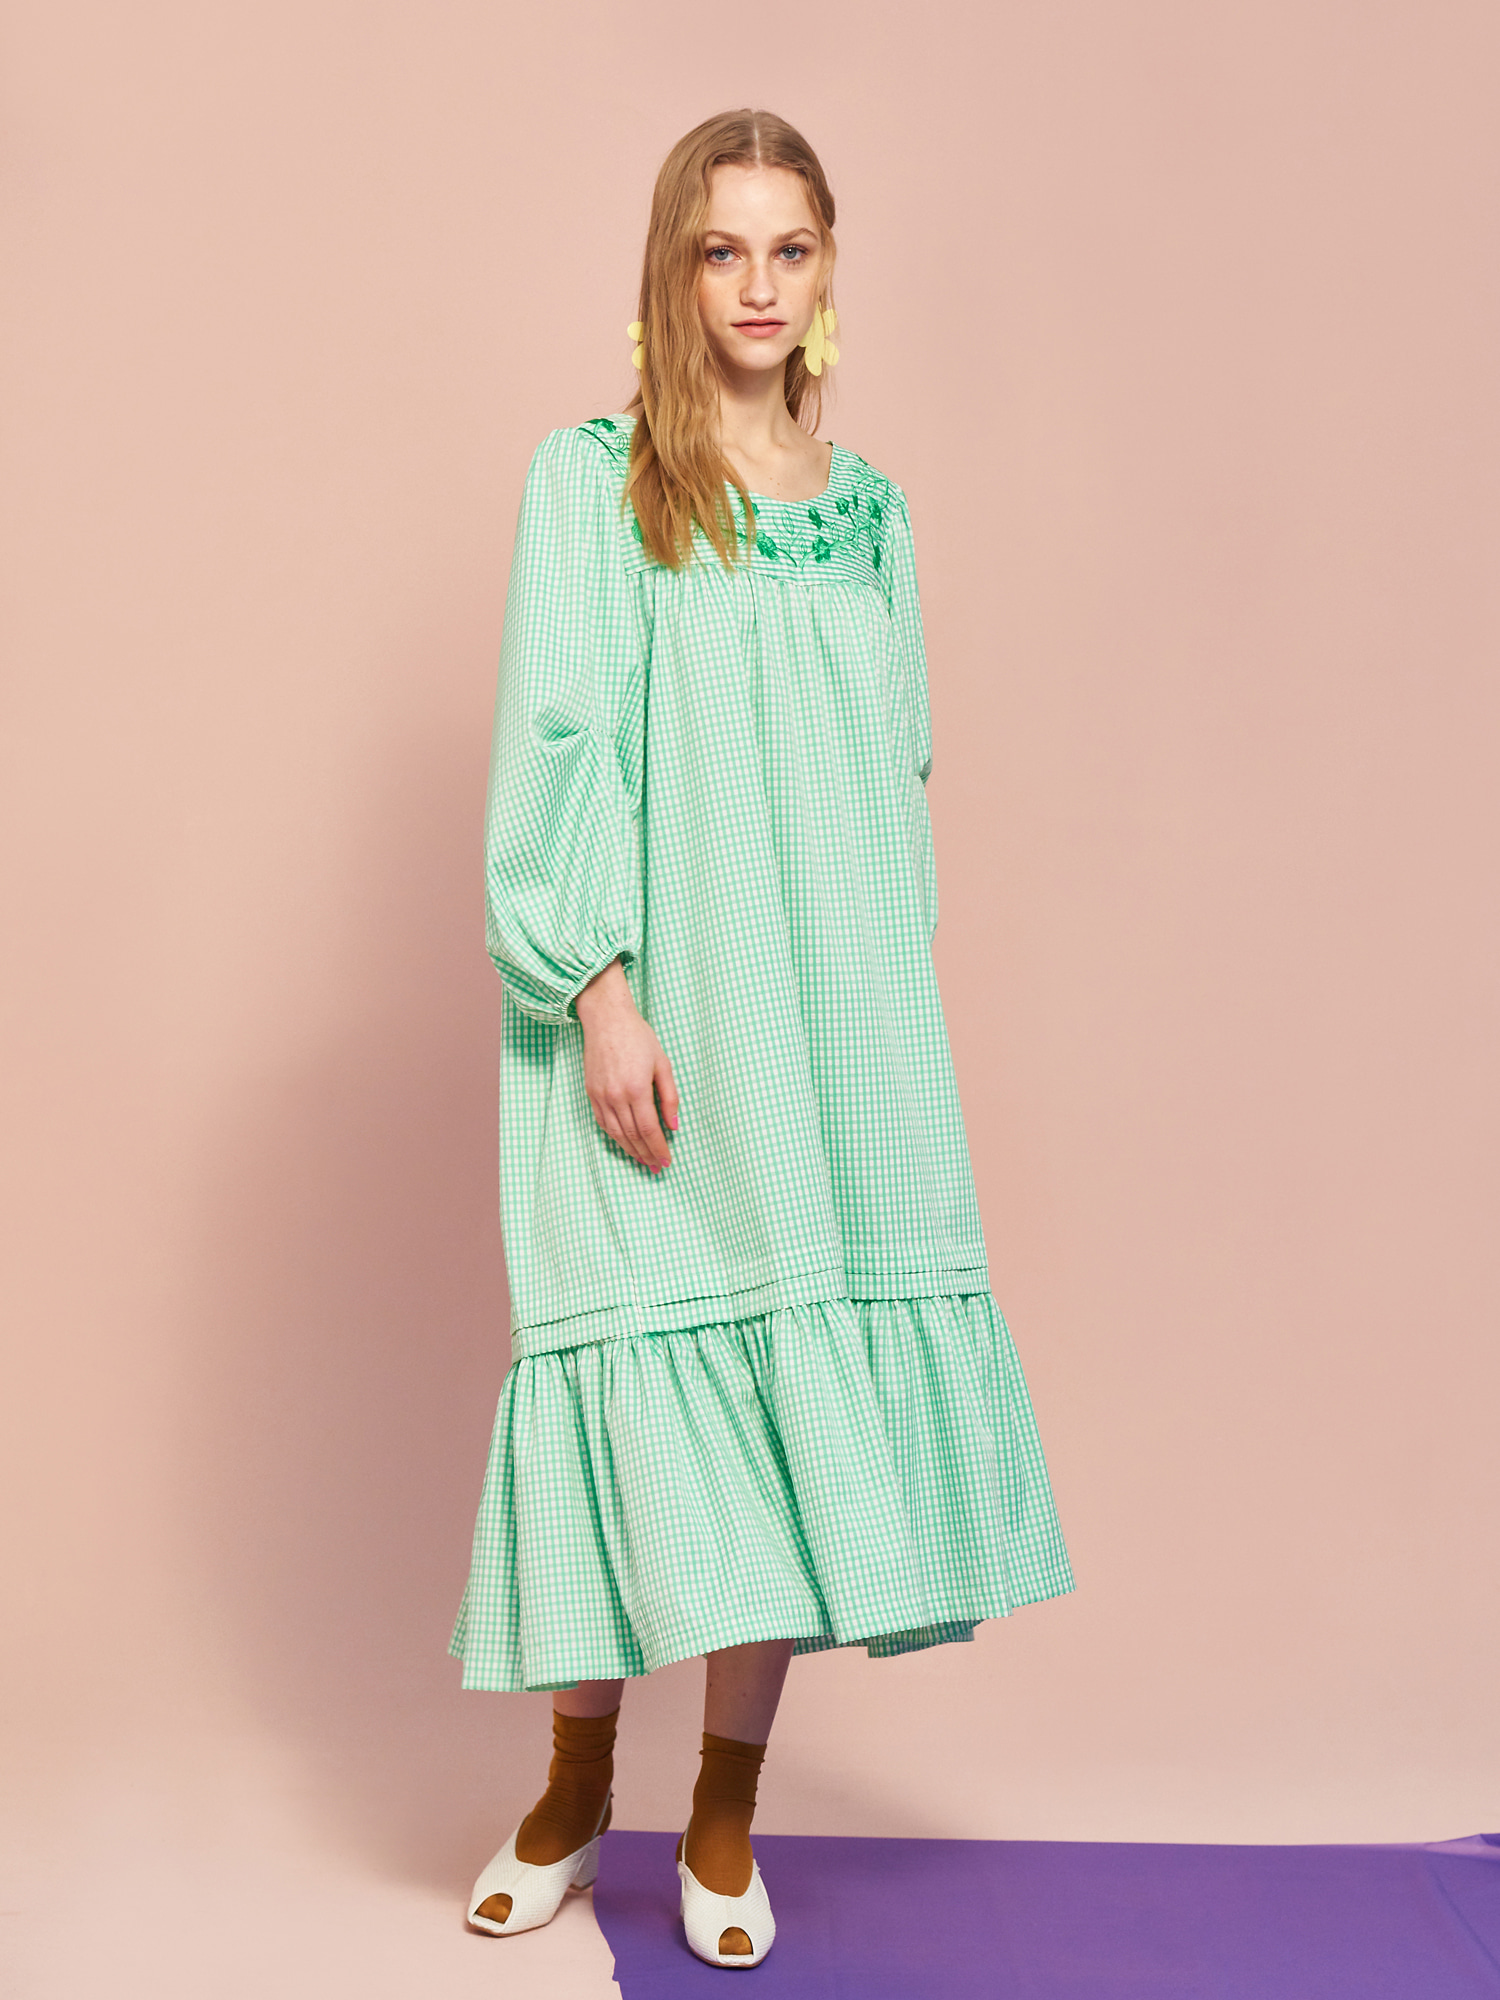 [MID SALE 50% 교환 및 반품불가]Gingham Embroidery Dress in Yellow Green